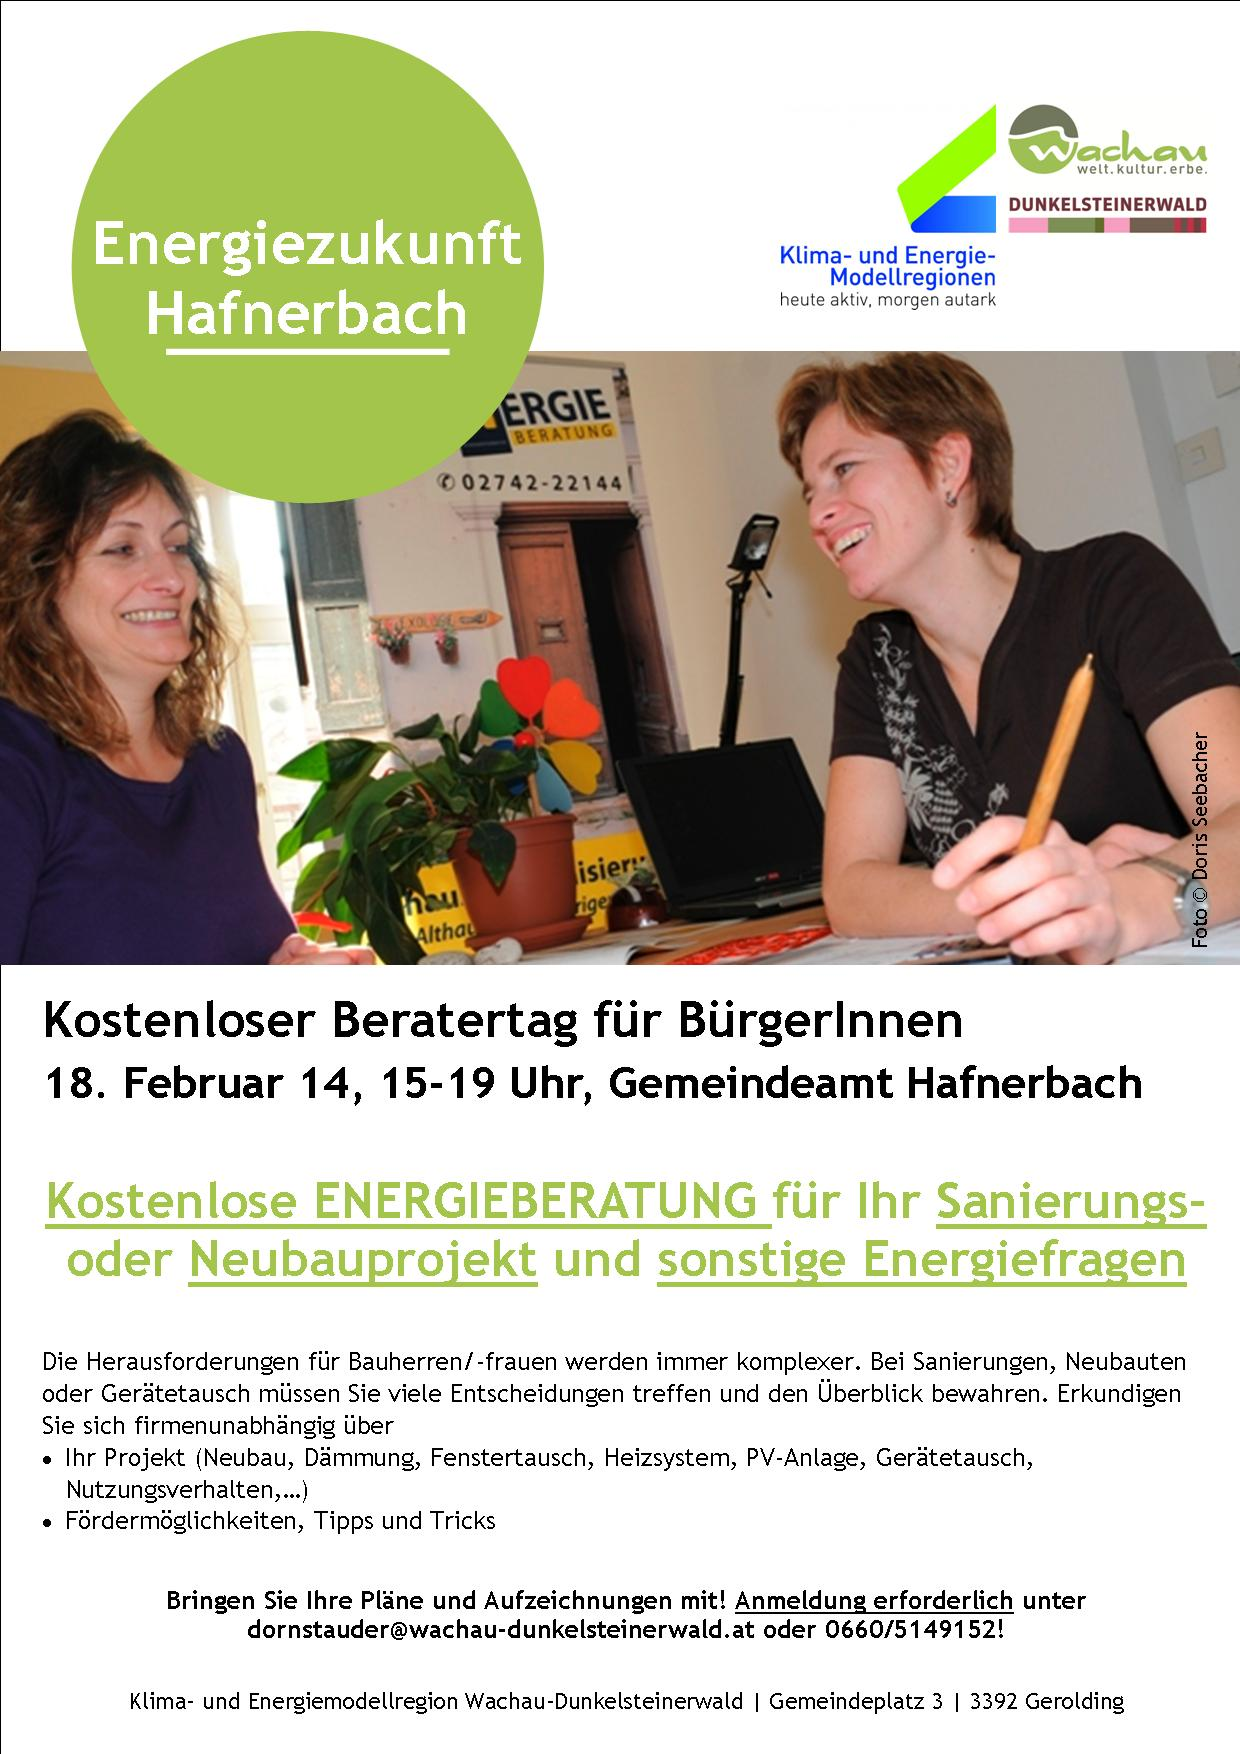 Beratertag_Hafnerbach